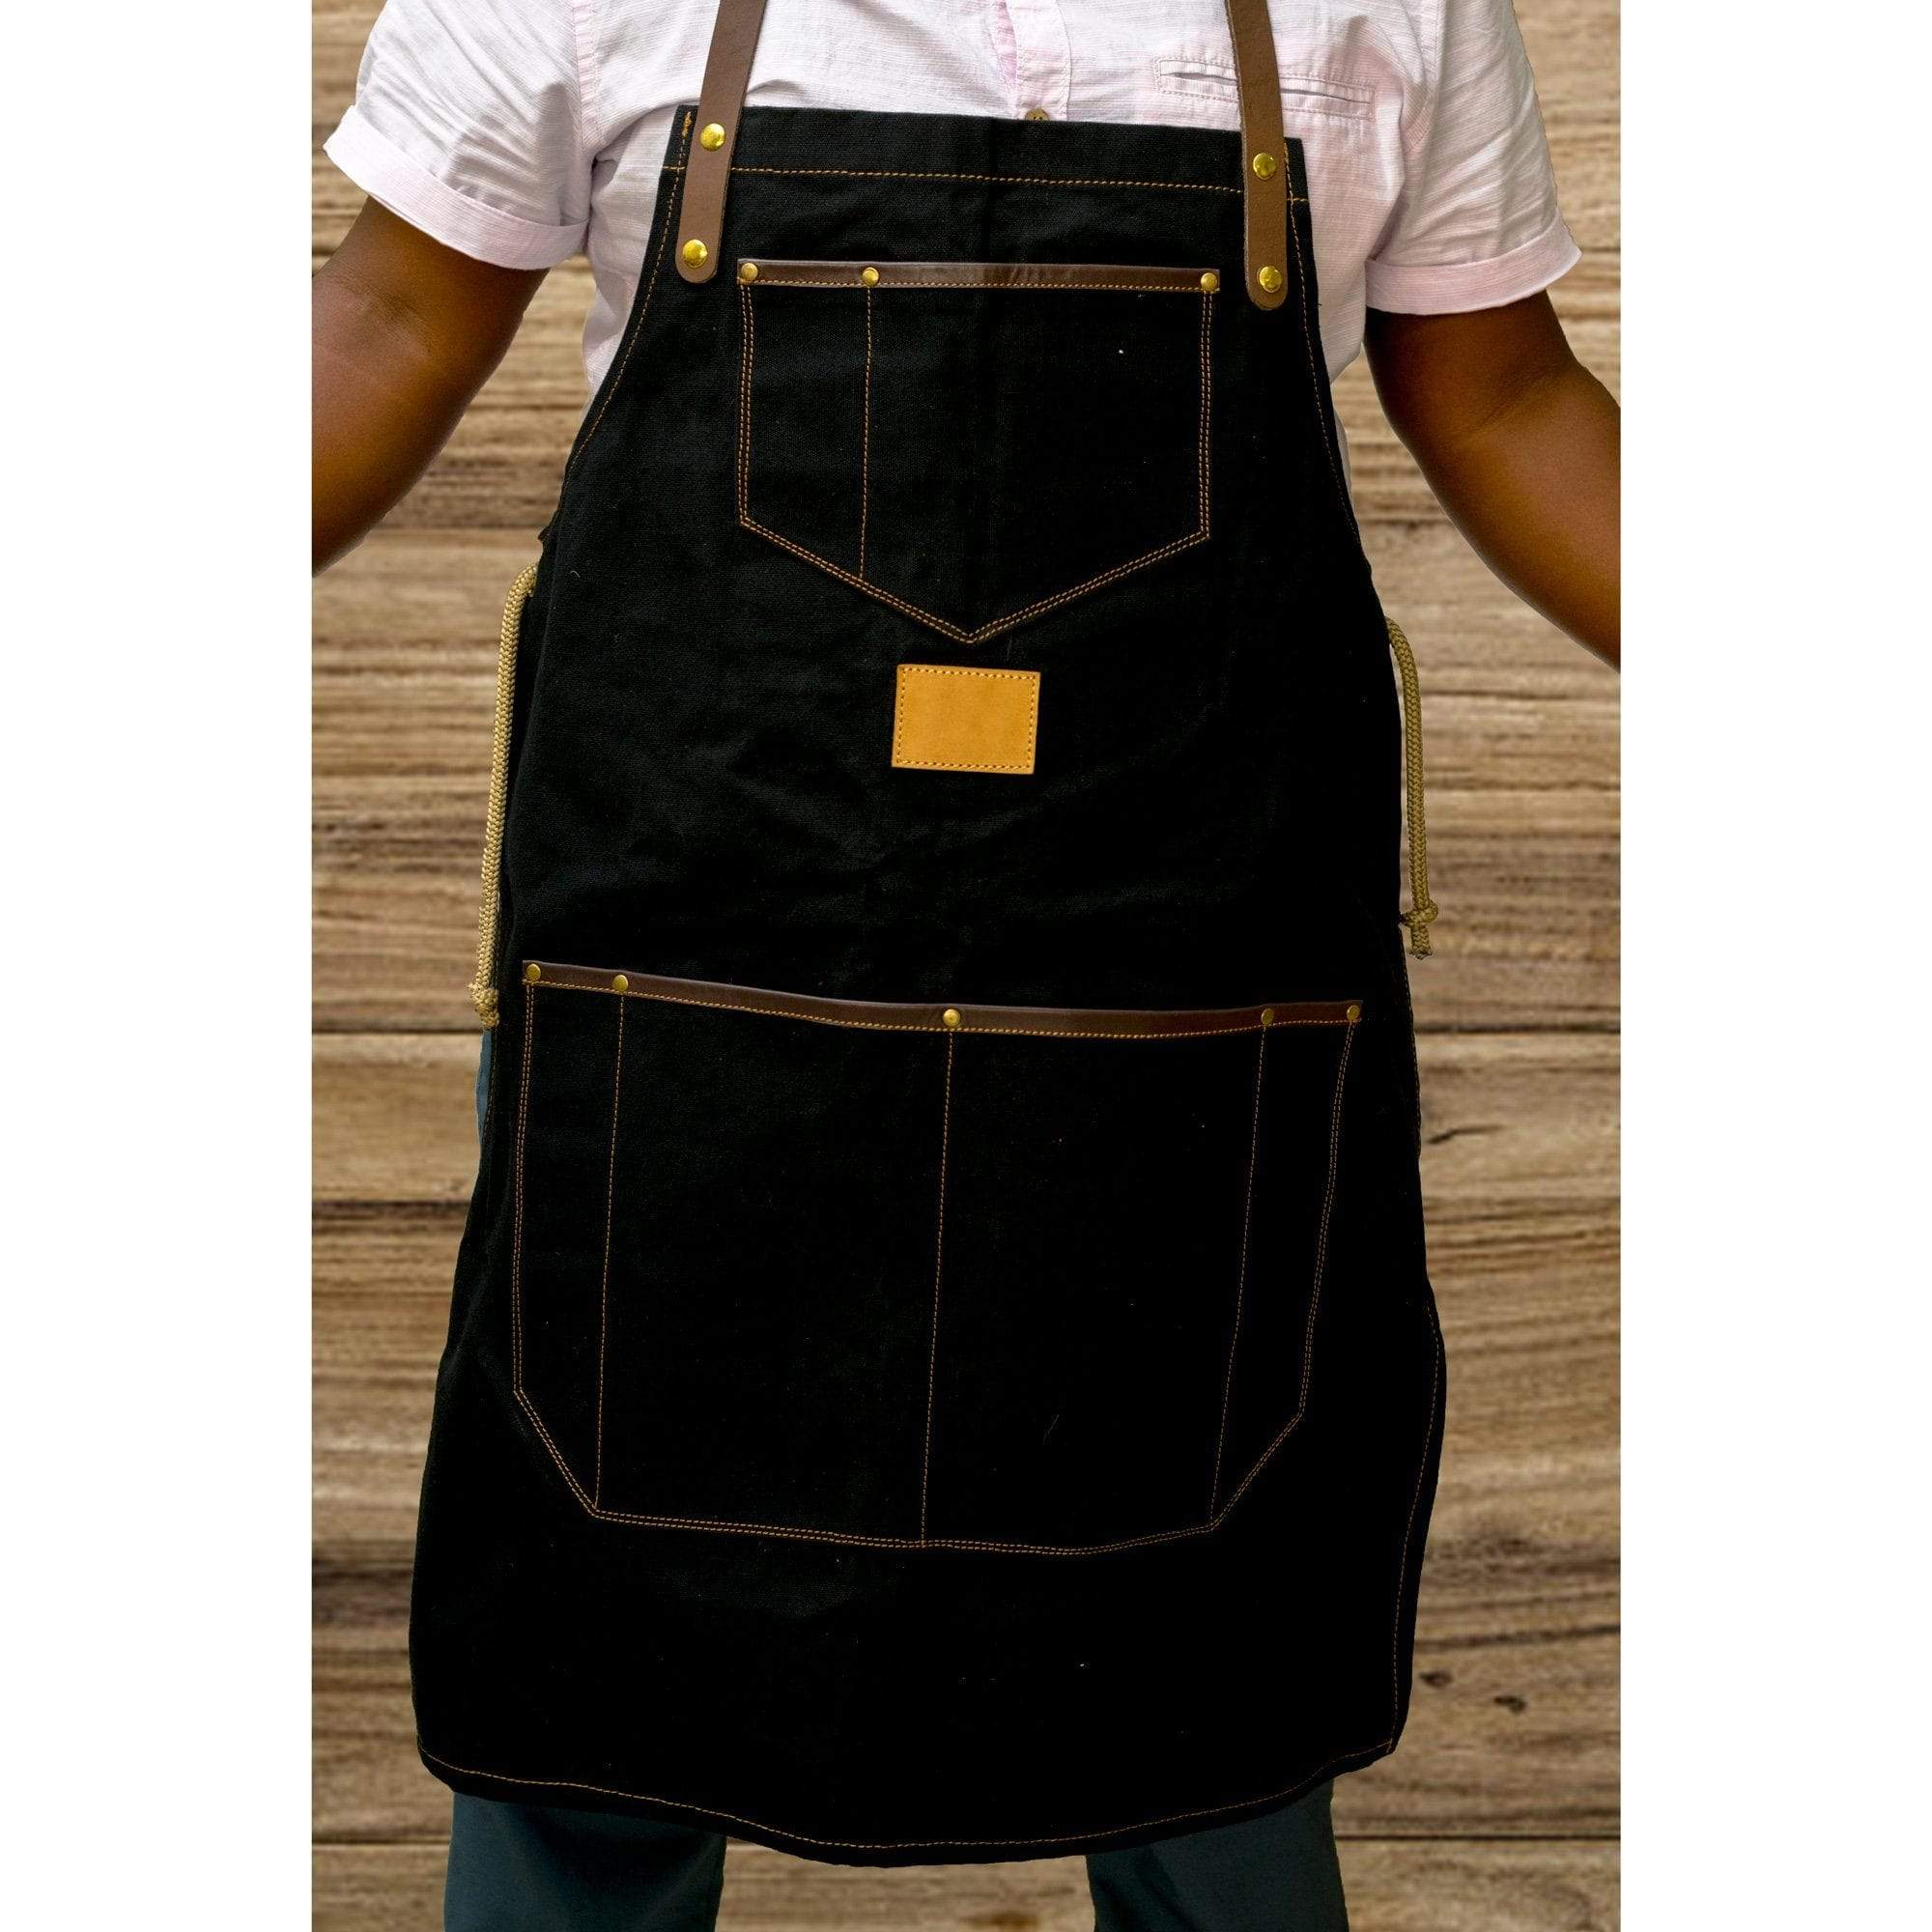 Personalised Canvas Aprons